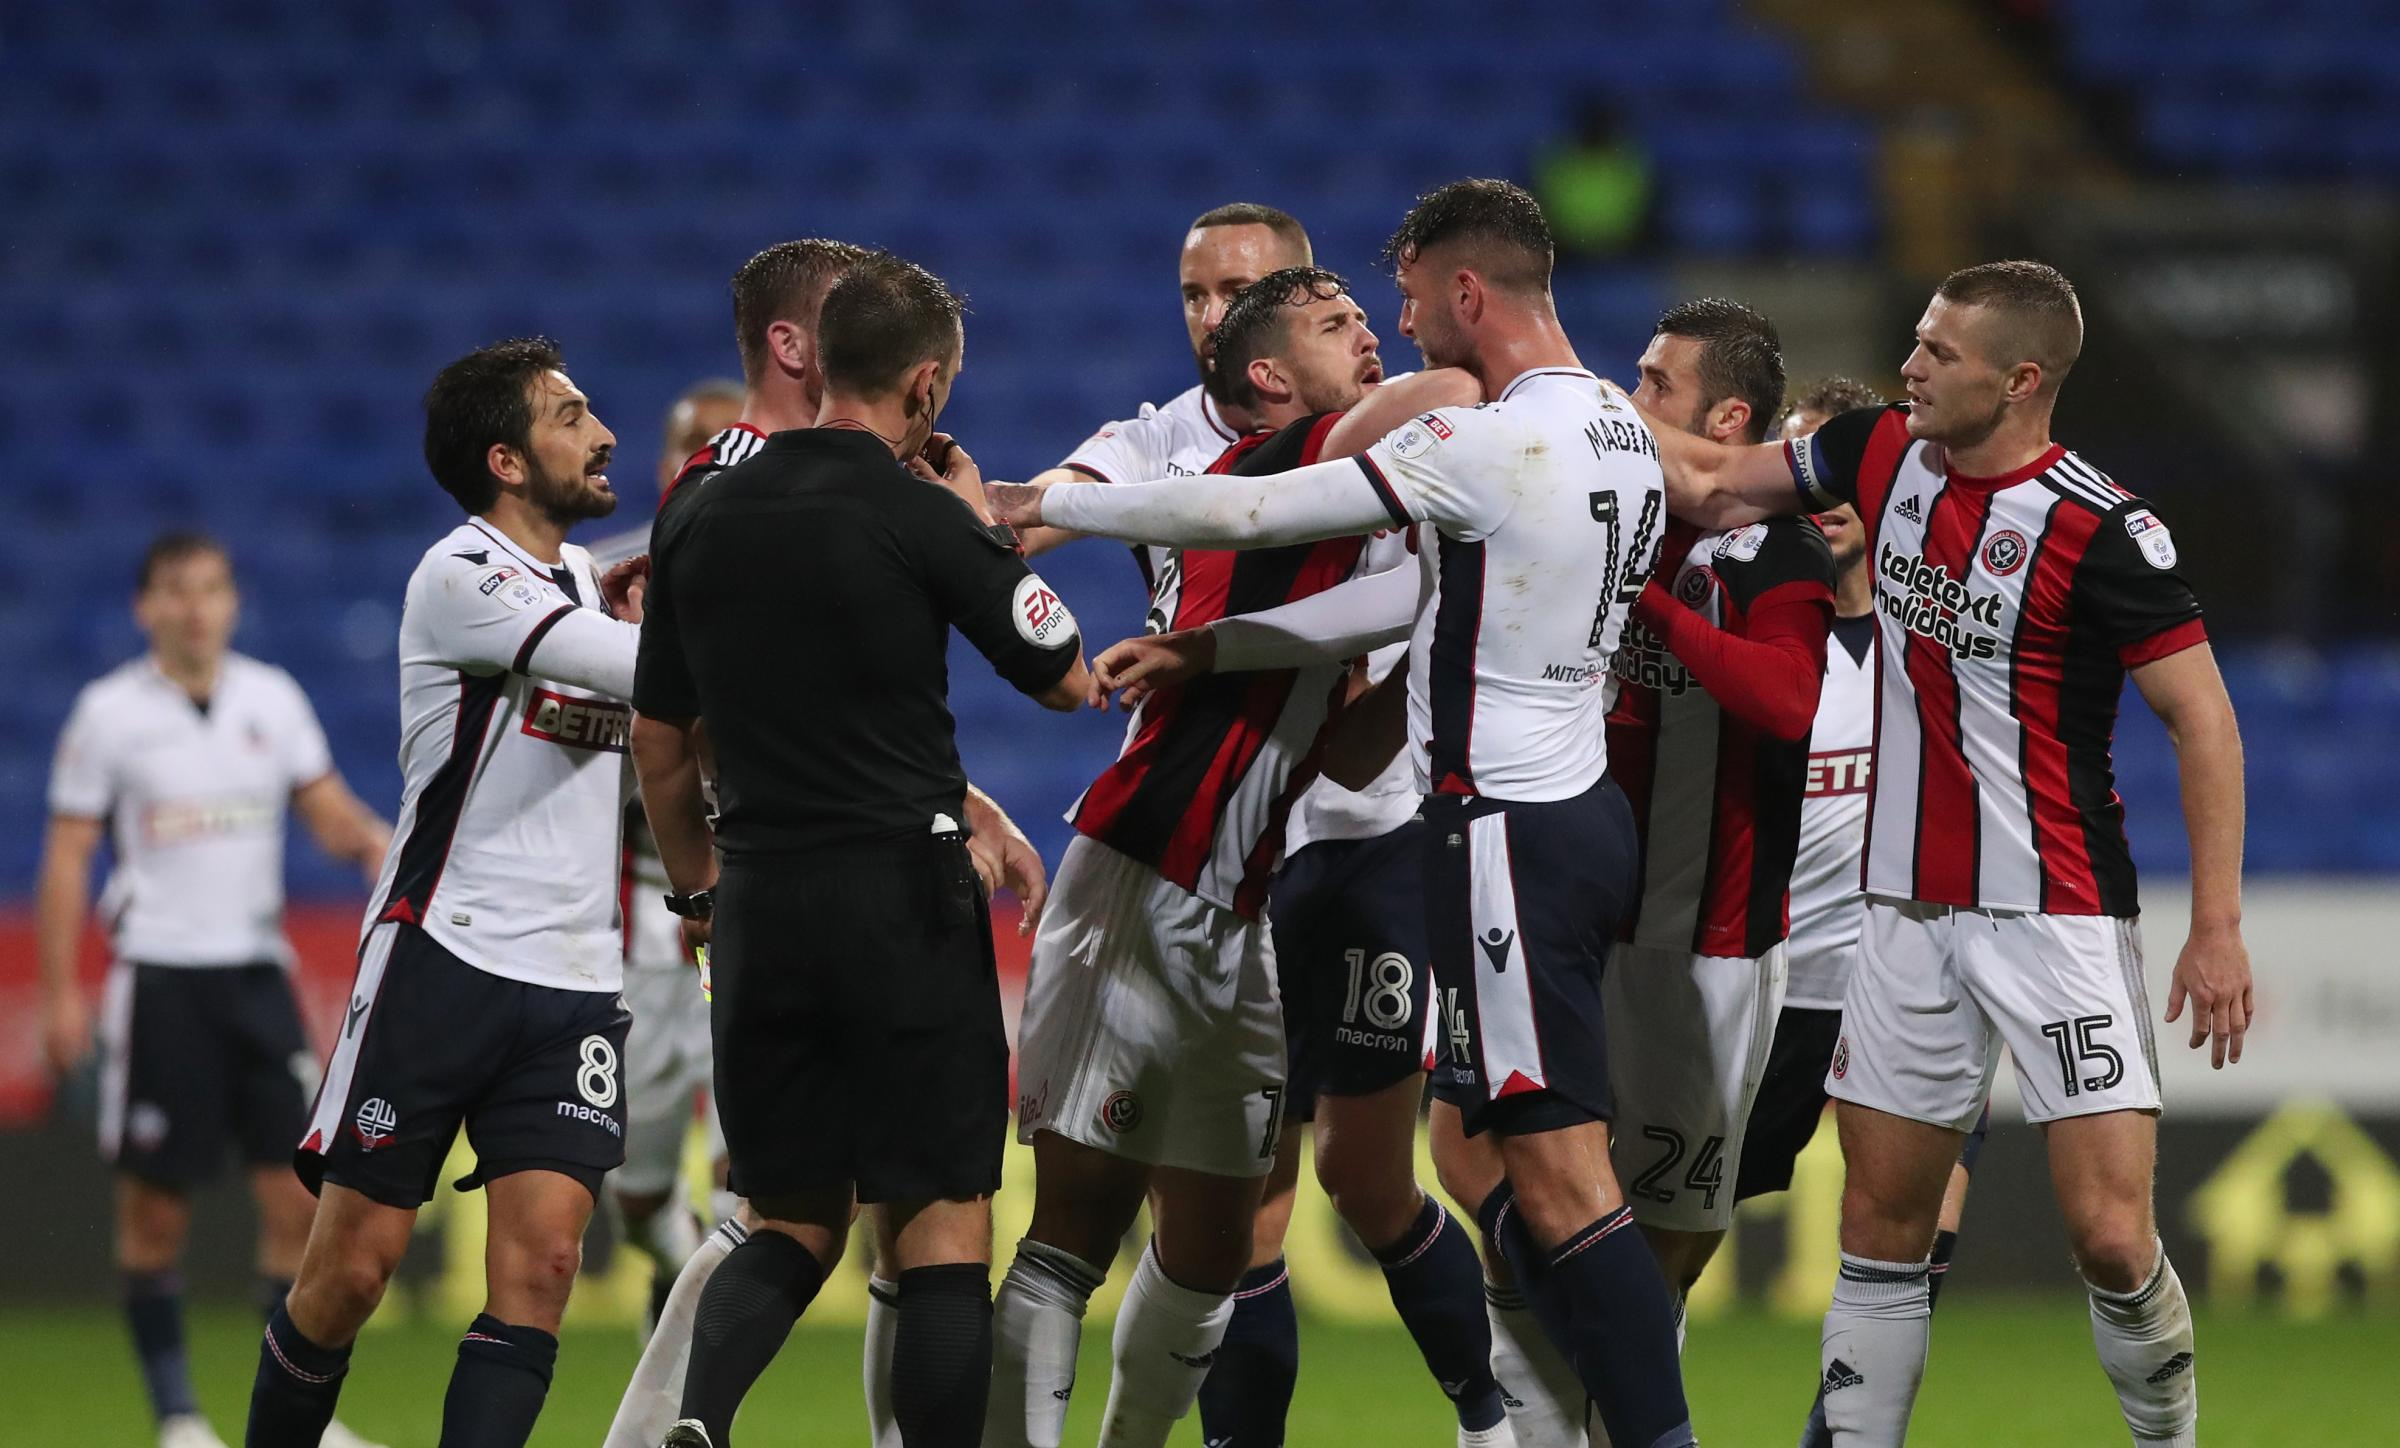 OLD FOES: Tempers have flared for former Wanderer Gary Madine in the past against Sheffield United... but now he has joined the Blades on loan from Cardiff